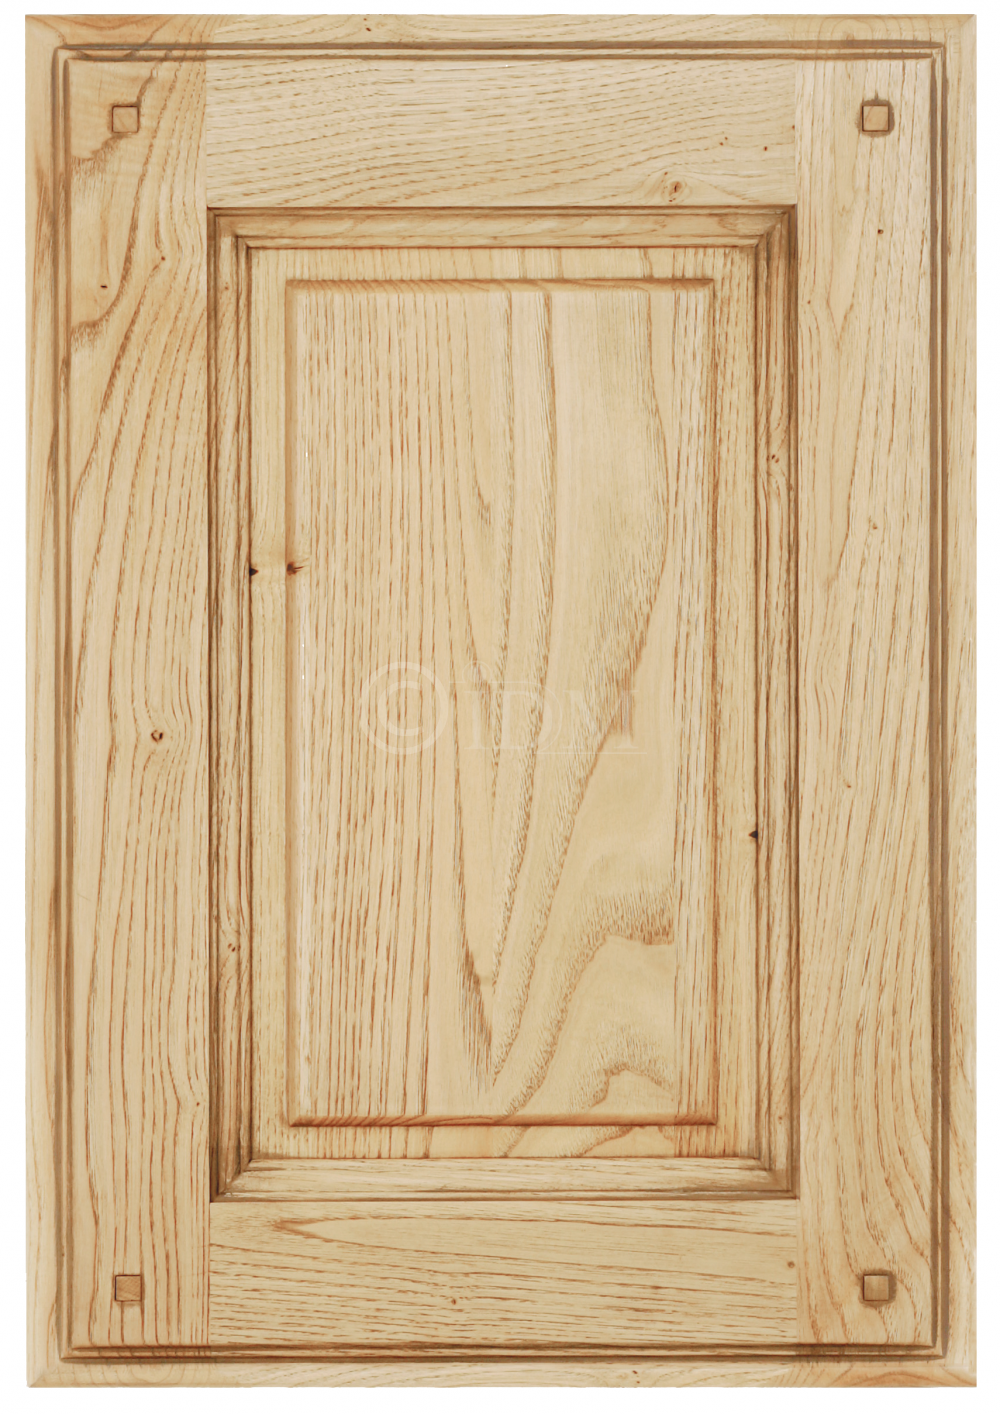 Irelands Largest Range Of 100 Solid Wood Cabinet Doors Solid Wood Kitchen Doors Made To Measure In Northern Ireland By In Doors Manufacturing